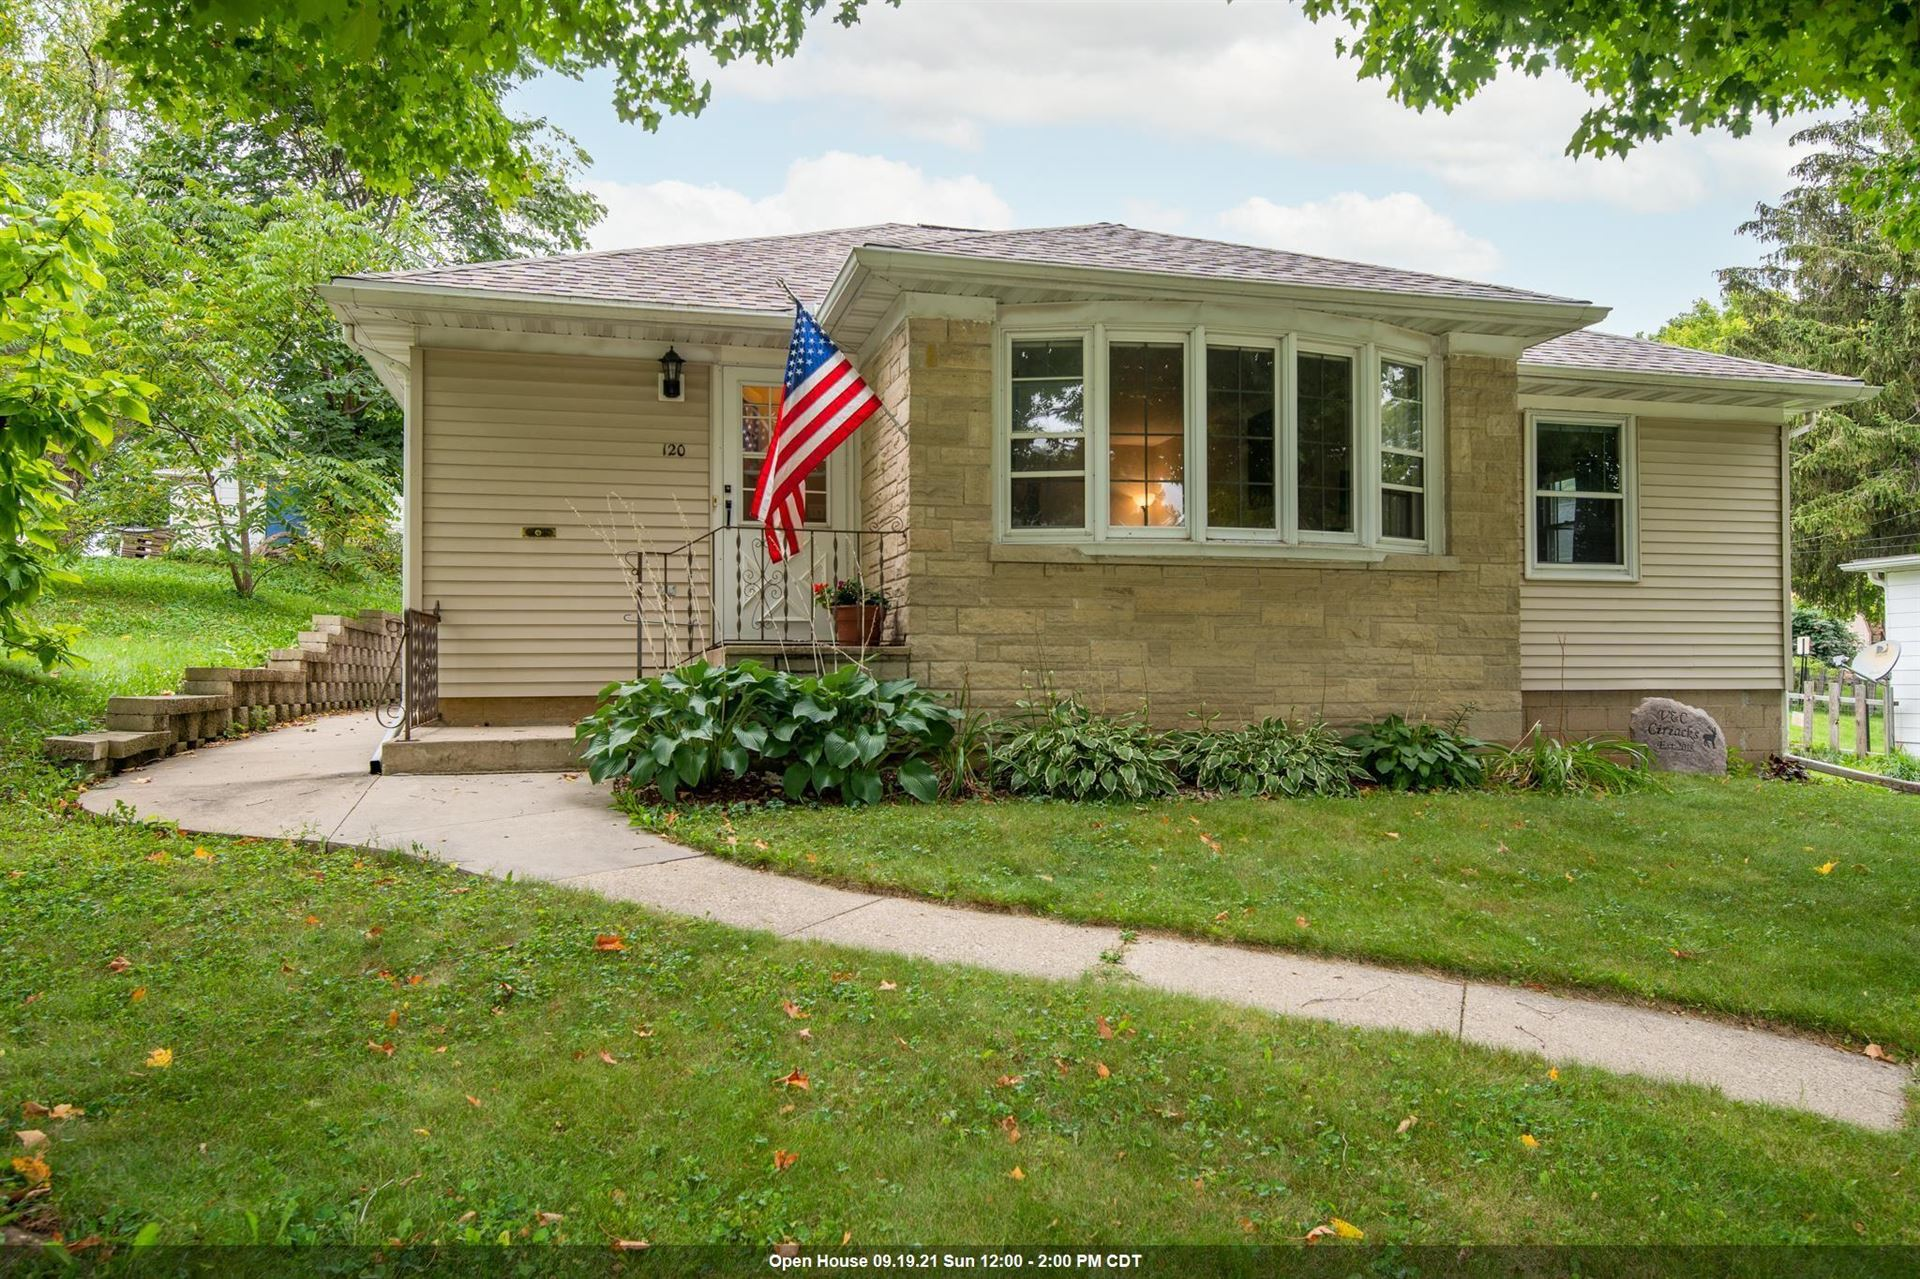 120 S FINCH STREET, Horicon, WI 53032 - #: 377420